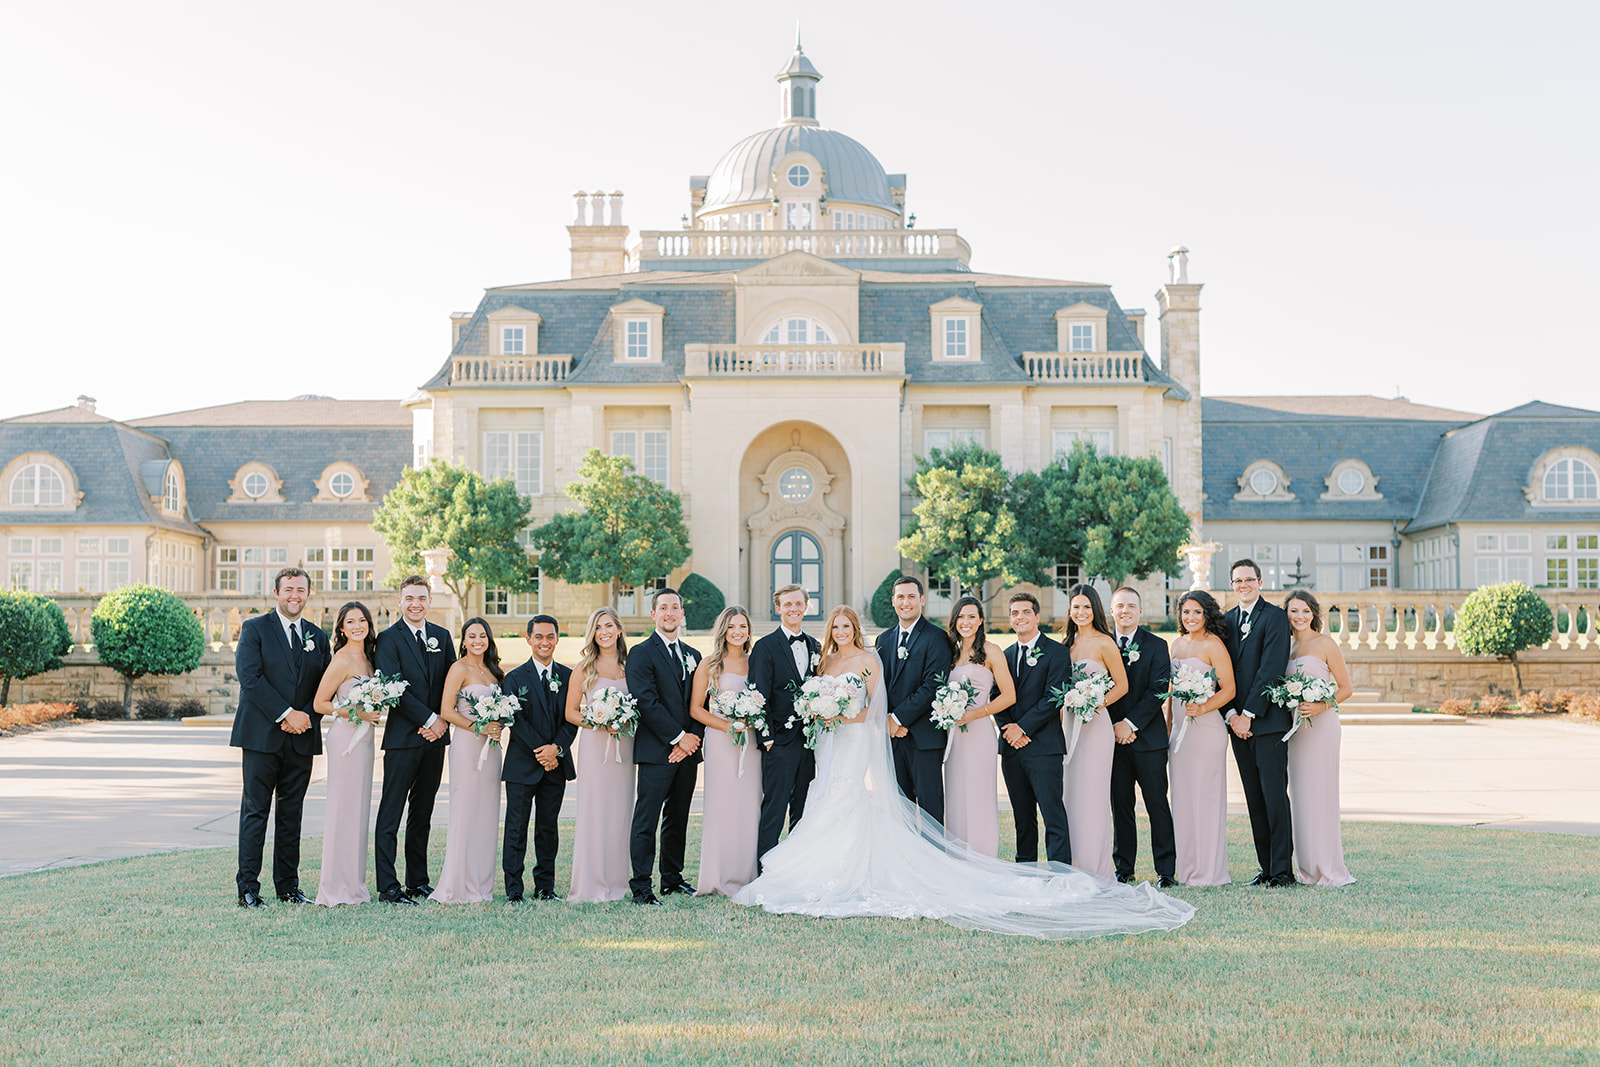 Dallas Fort Worth Wedding at The Olana by Megan Kay Photography